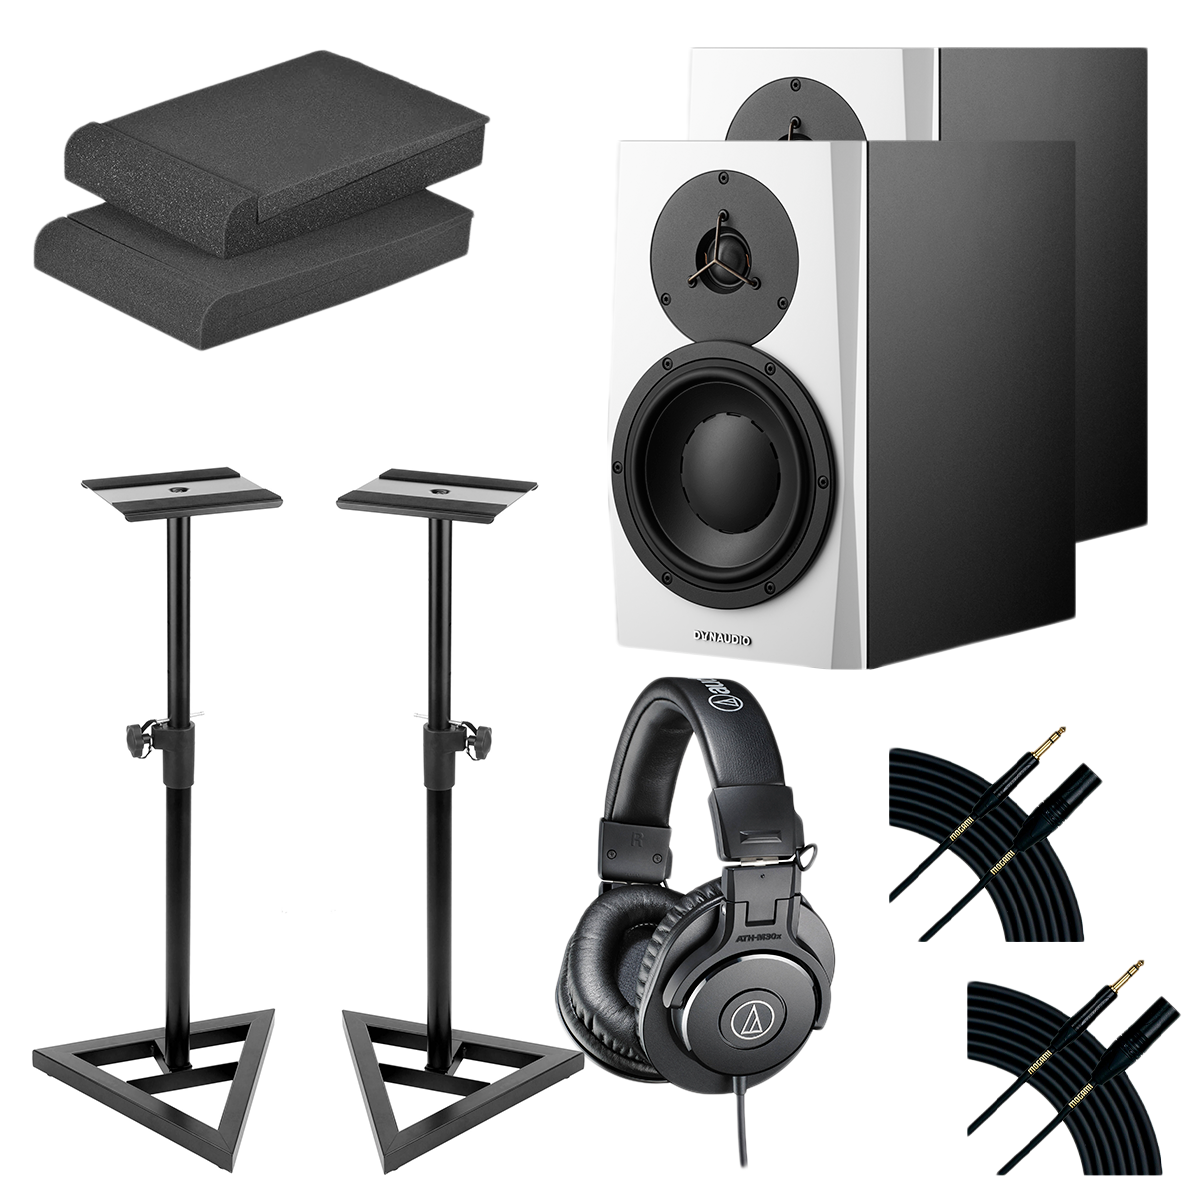 -16 Dynaudio LYD 7 7″ Powered Studio Monitor White (Pair) - Monitor Stands - (2) Mogami Cable - Foam Pads - ATH-M30X Headphone - $1299.99